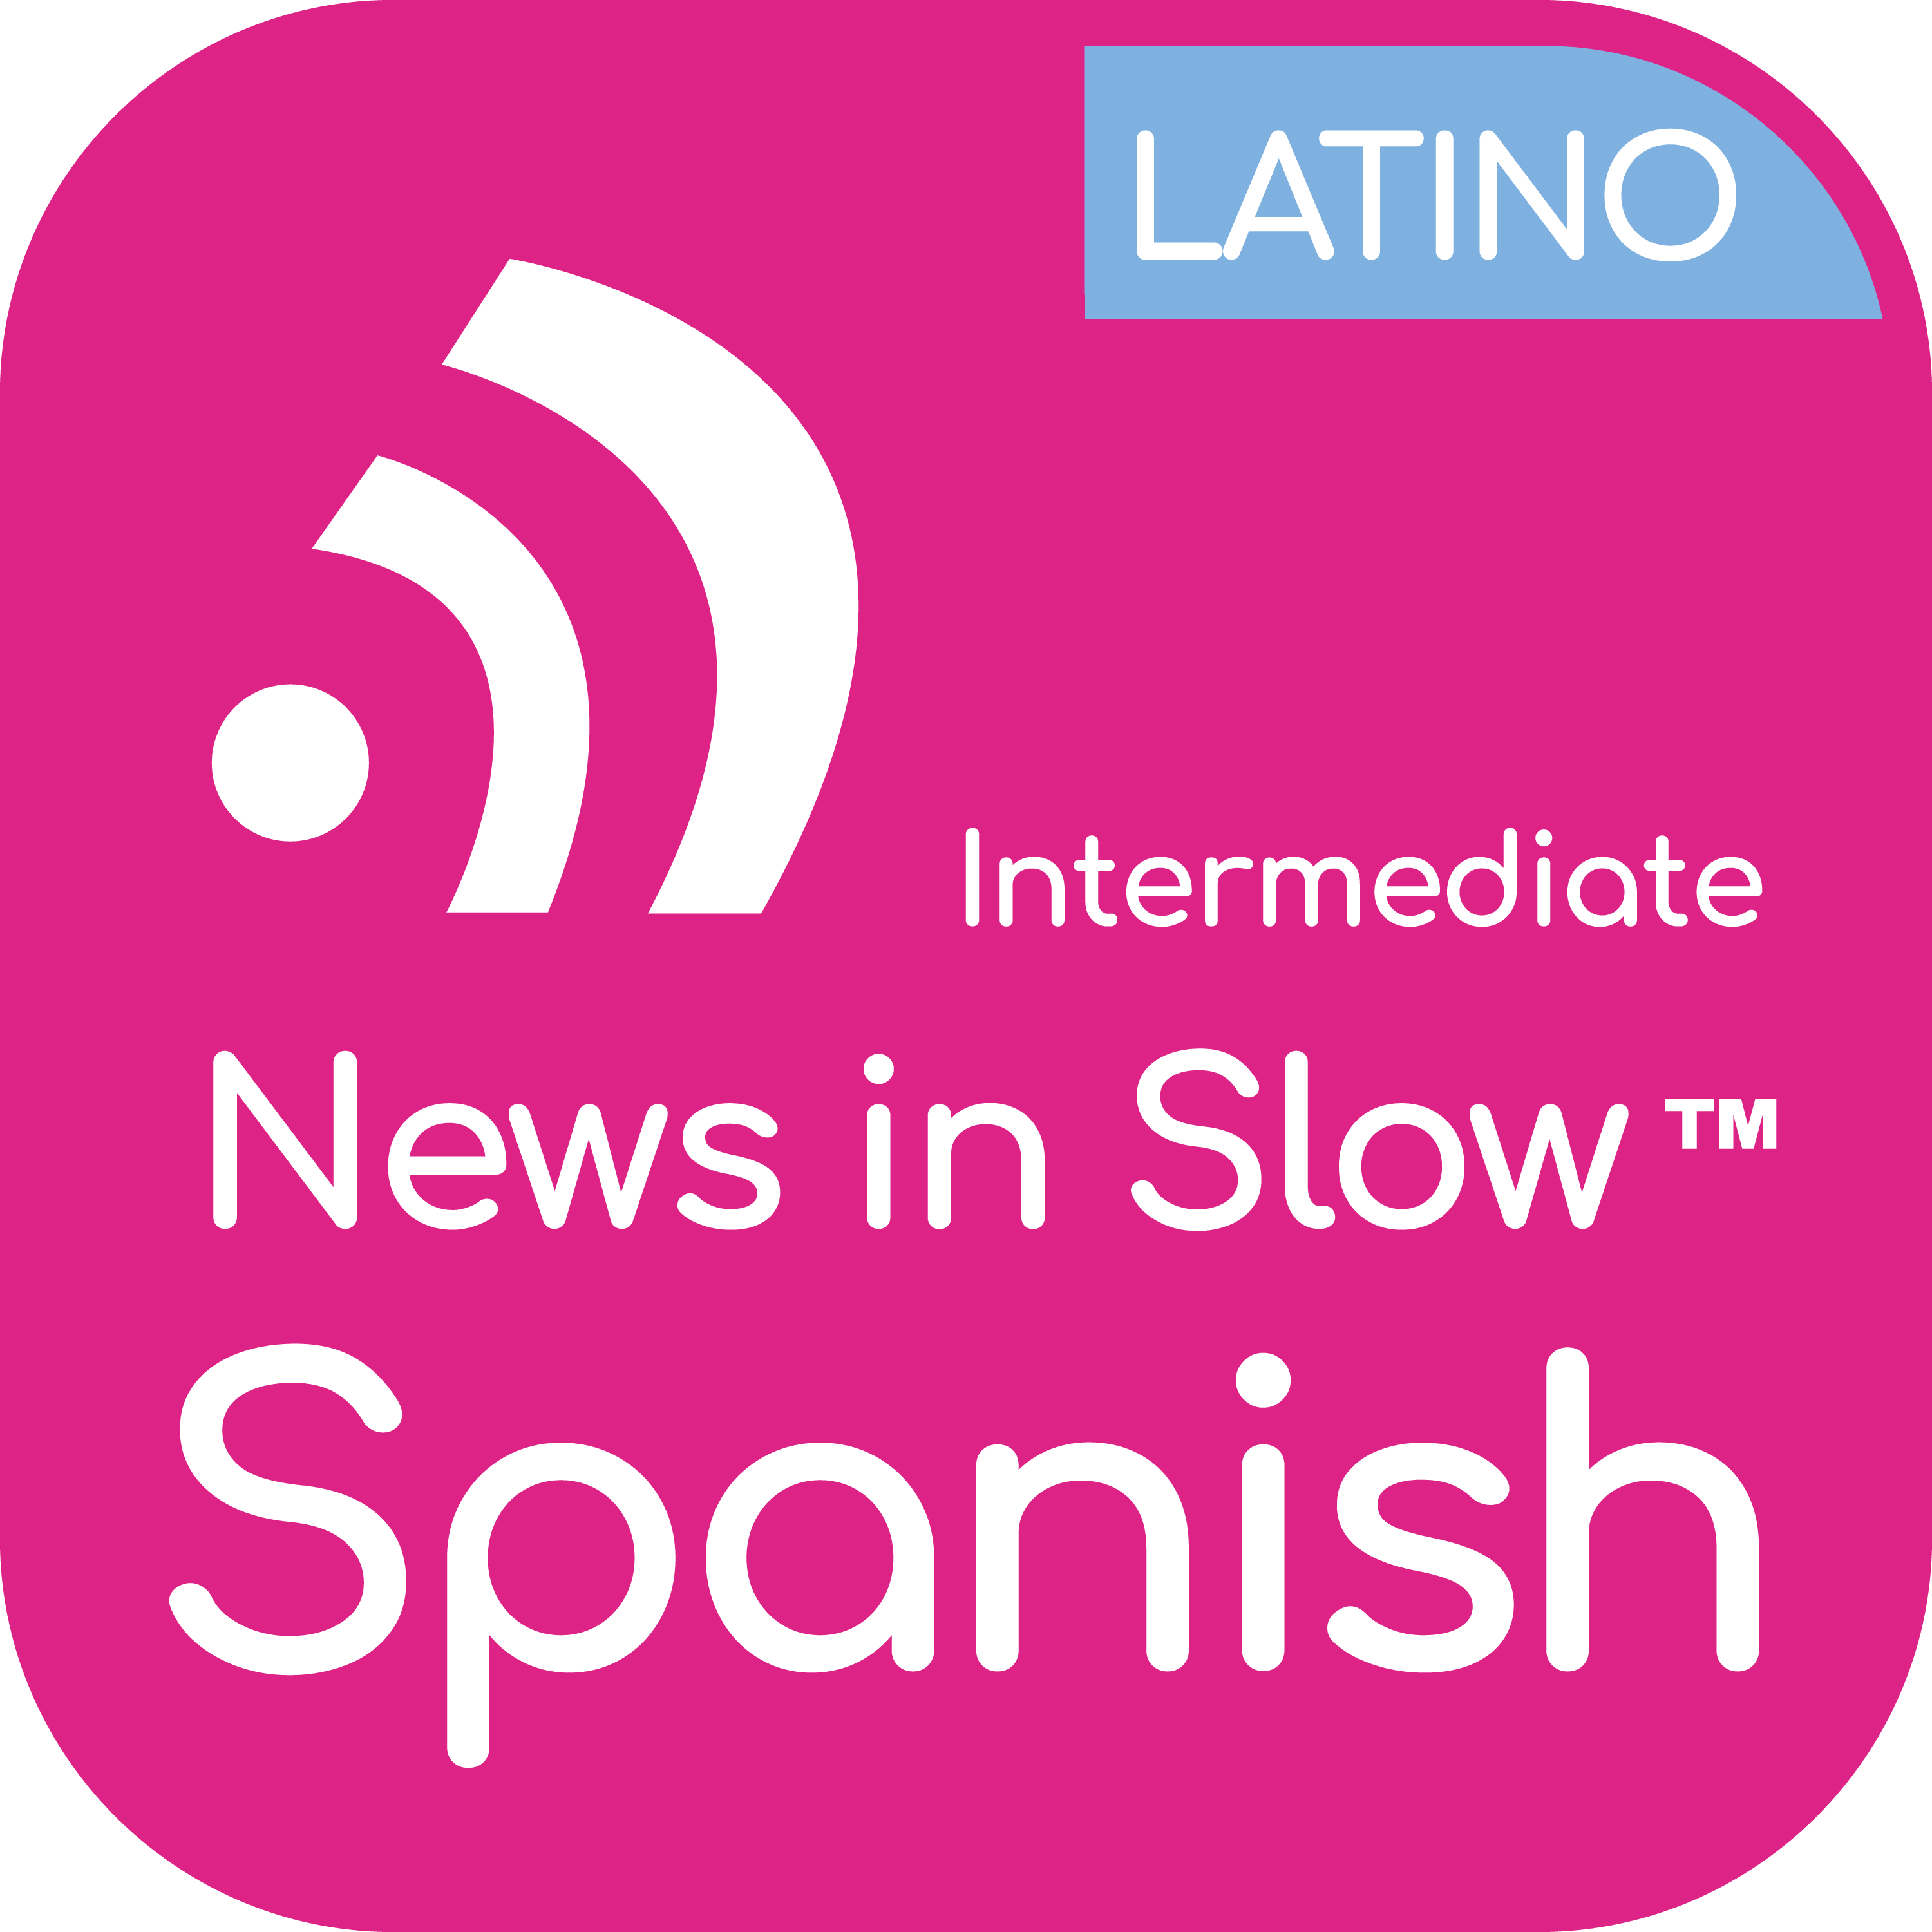 News In Slow Spanish Latino #379 - Study Spanish while Listening to the News